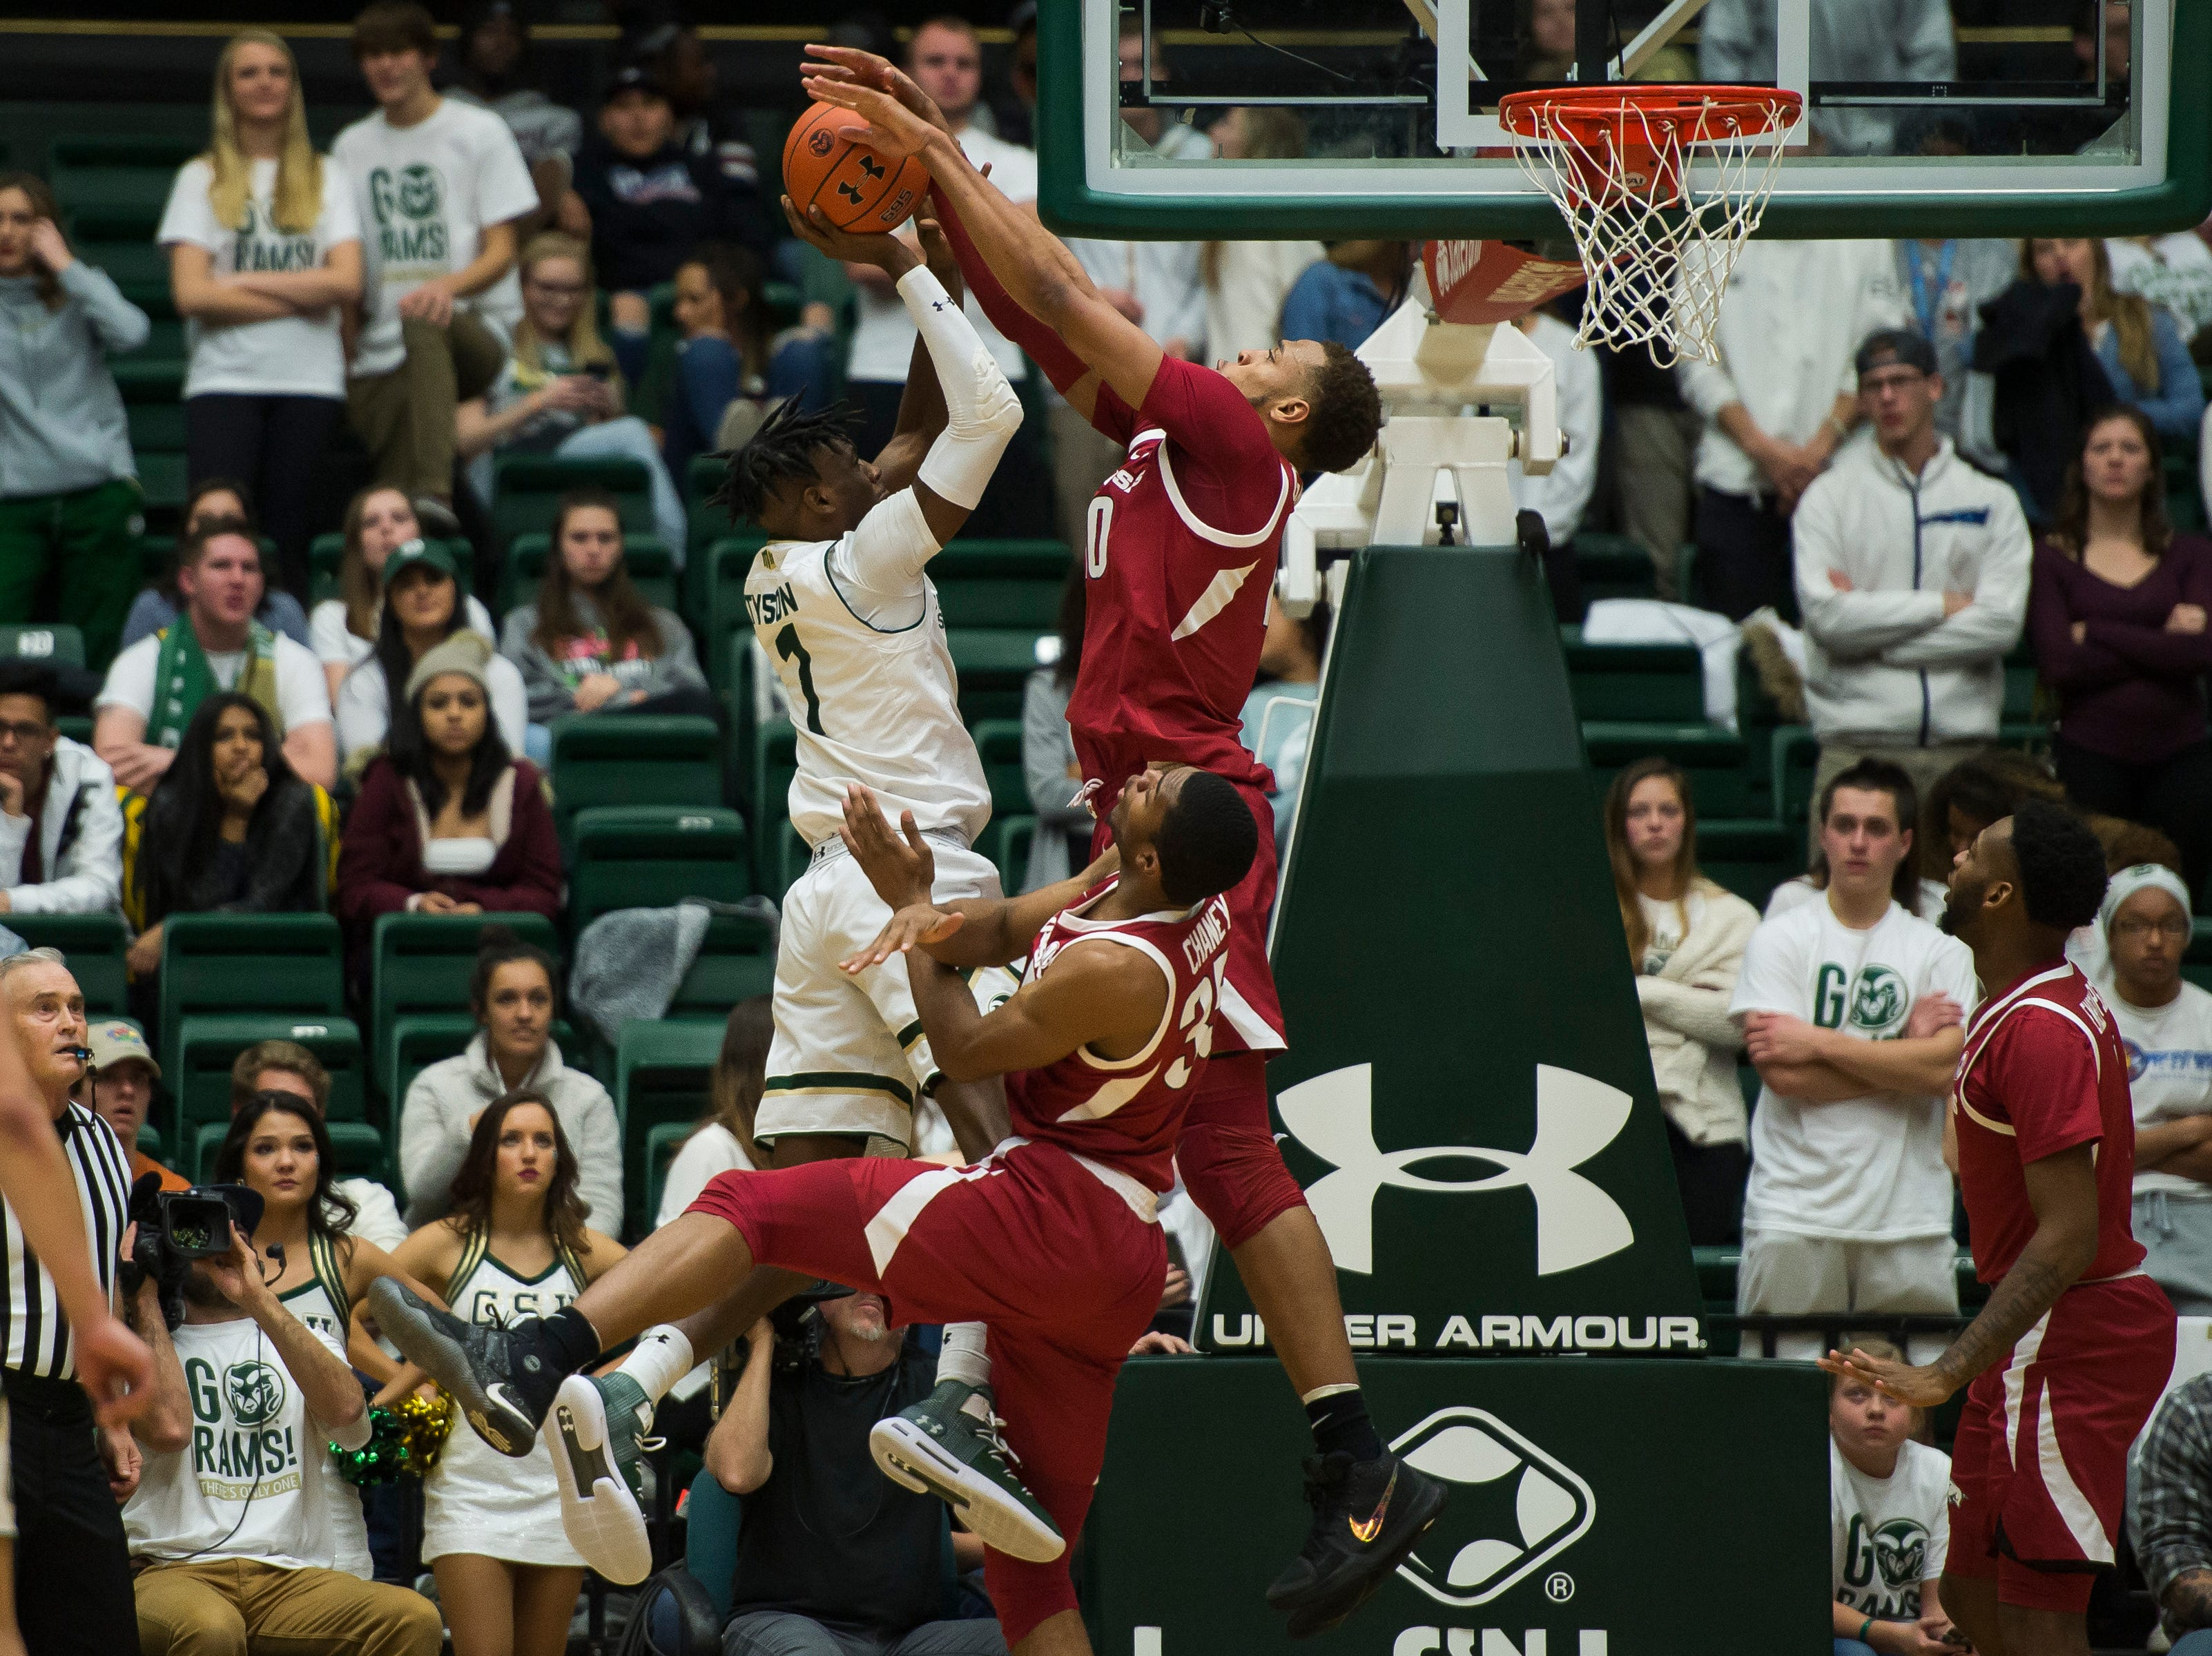 Arkansas sophomore forward Daniel Gafford (10) blocks a shot by Colorado State University junior forward Zo Tyson (1) on Wednesday, Dec. 5, 2018, Moby Arena in Fort Collins, Colo.